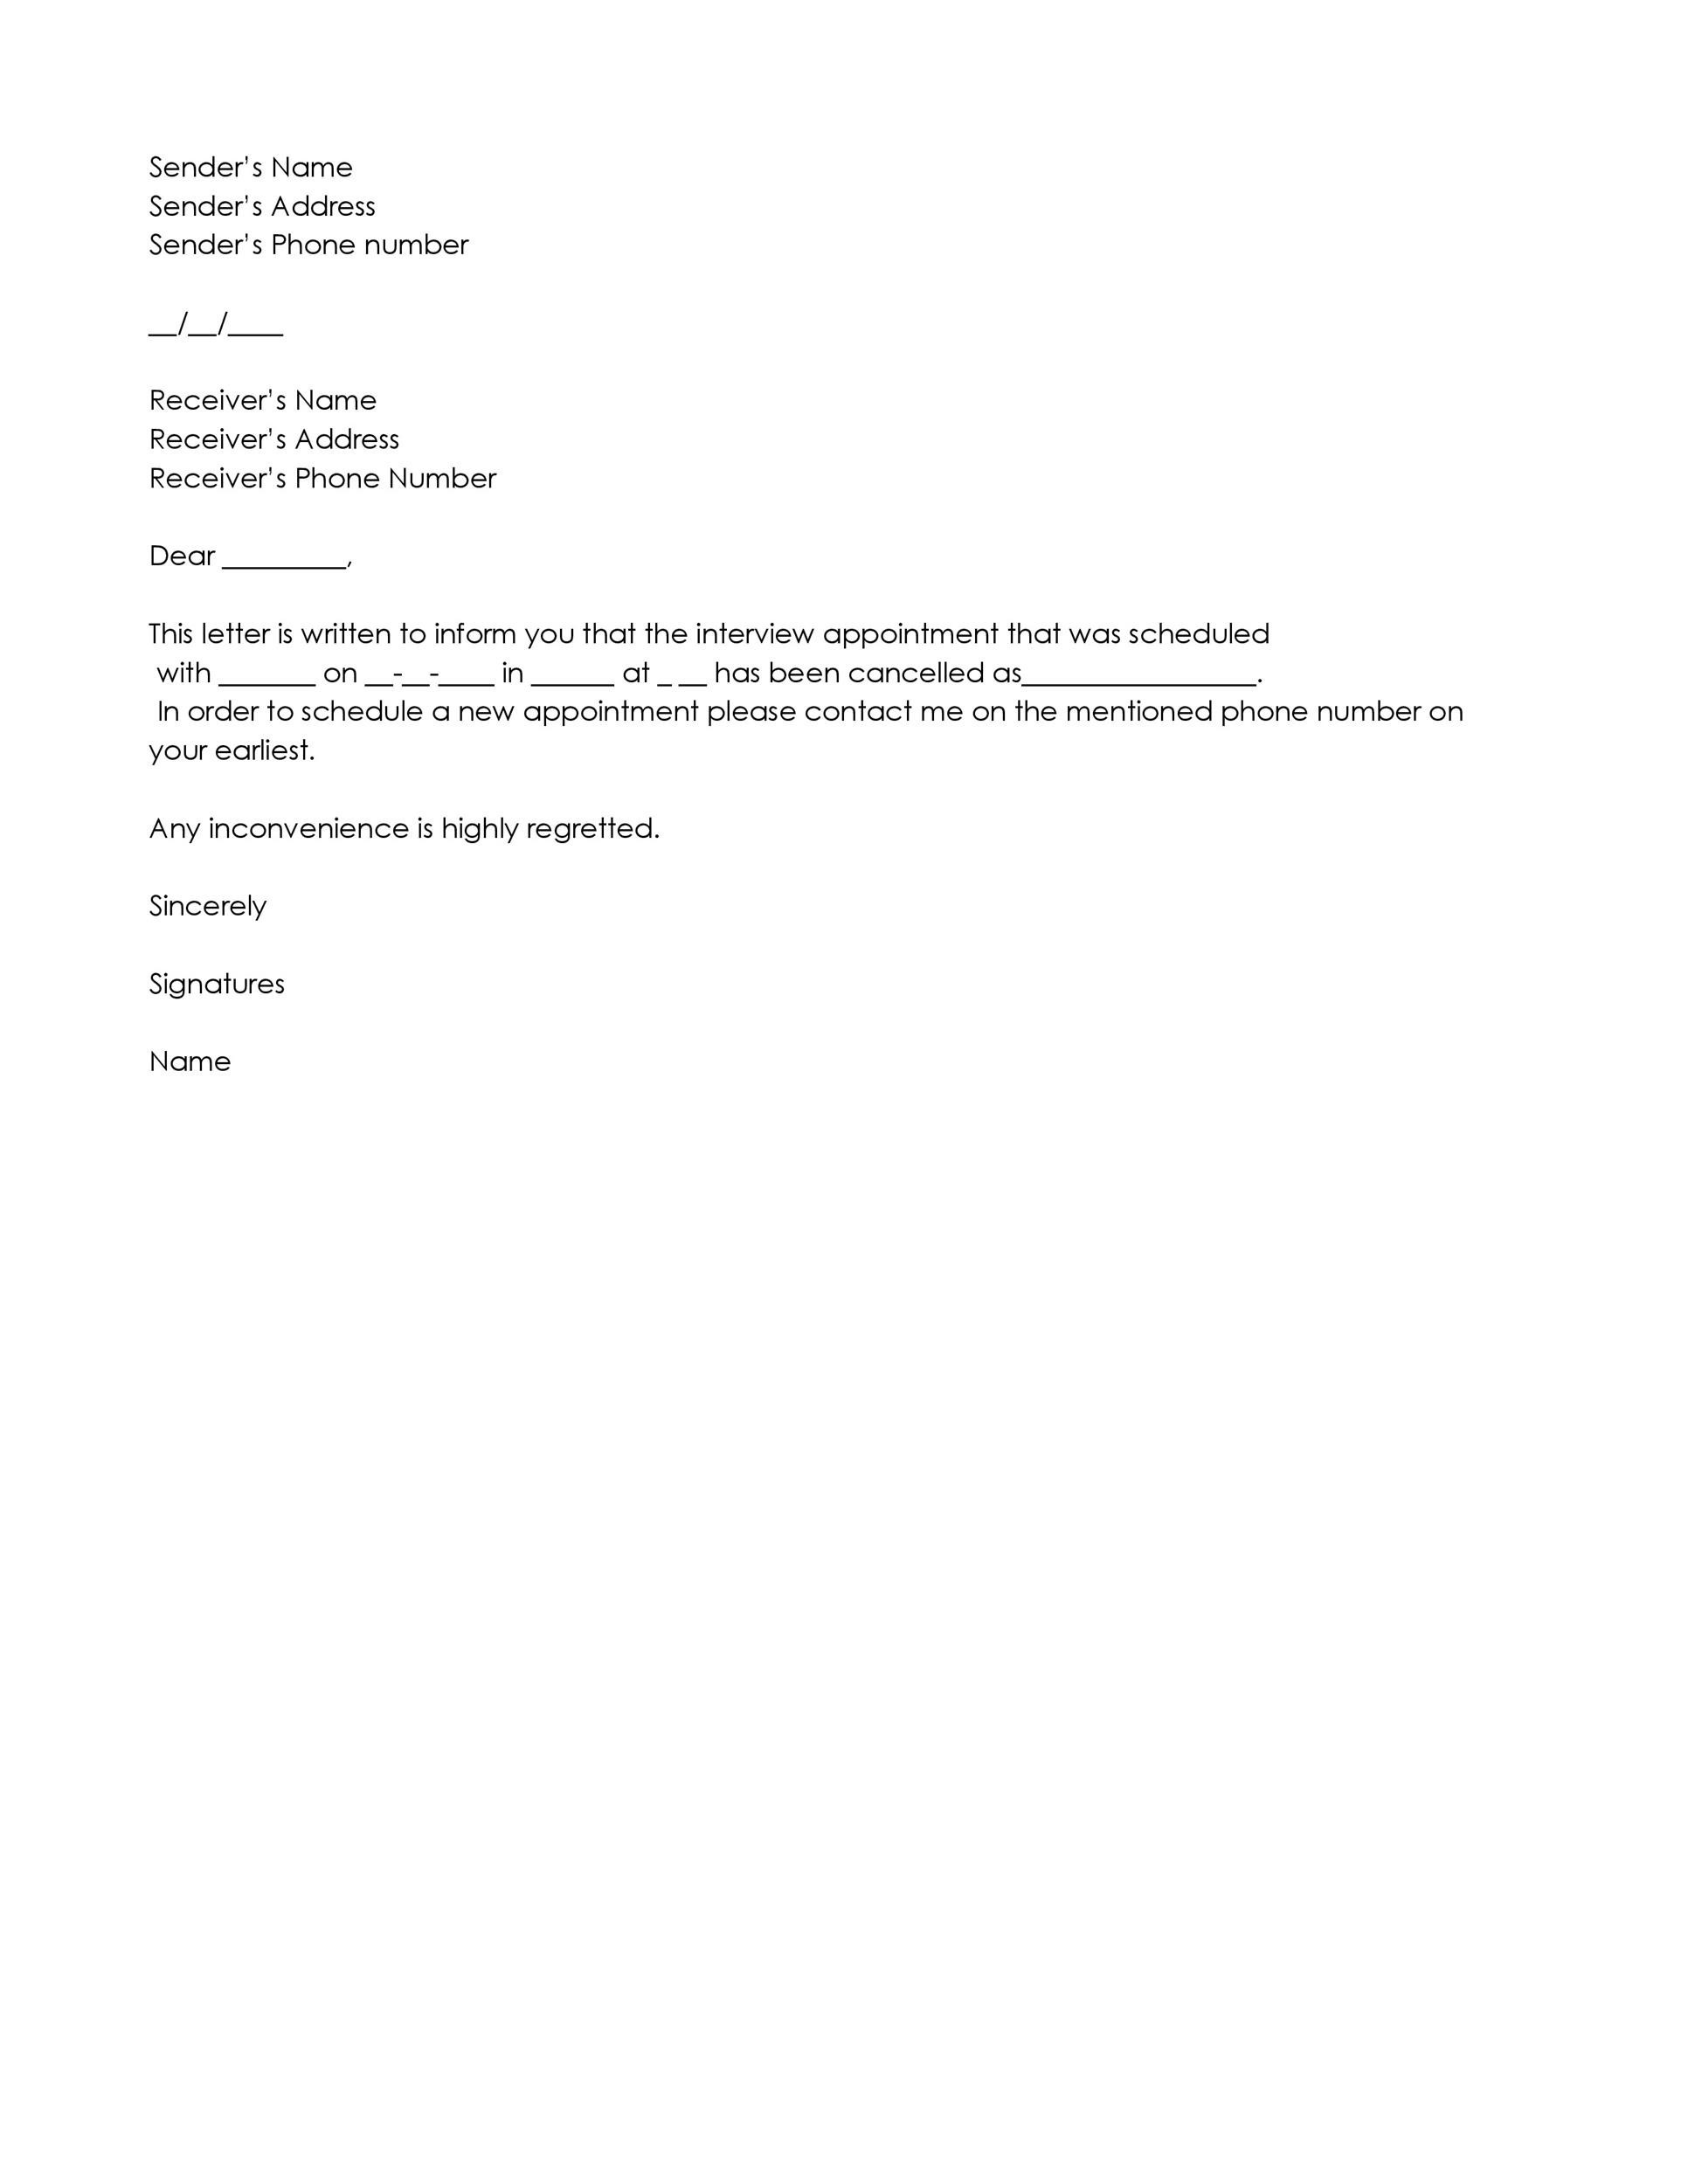 Free cancellation letter 12